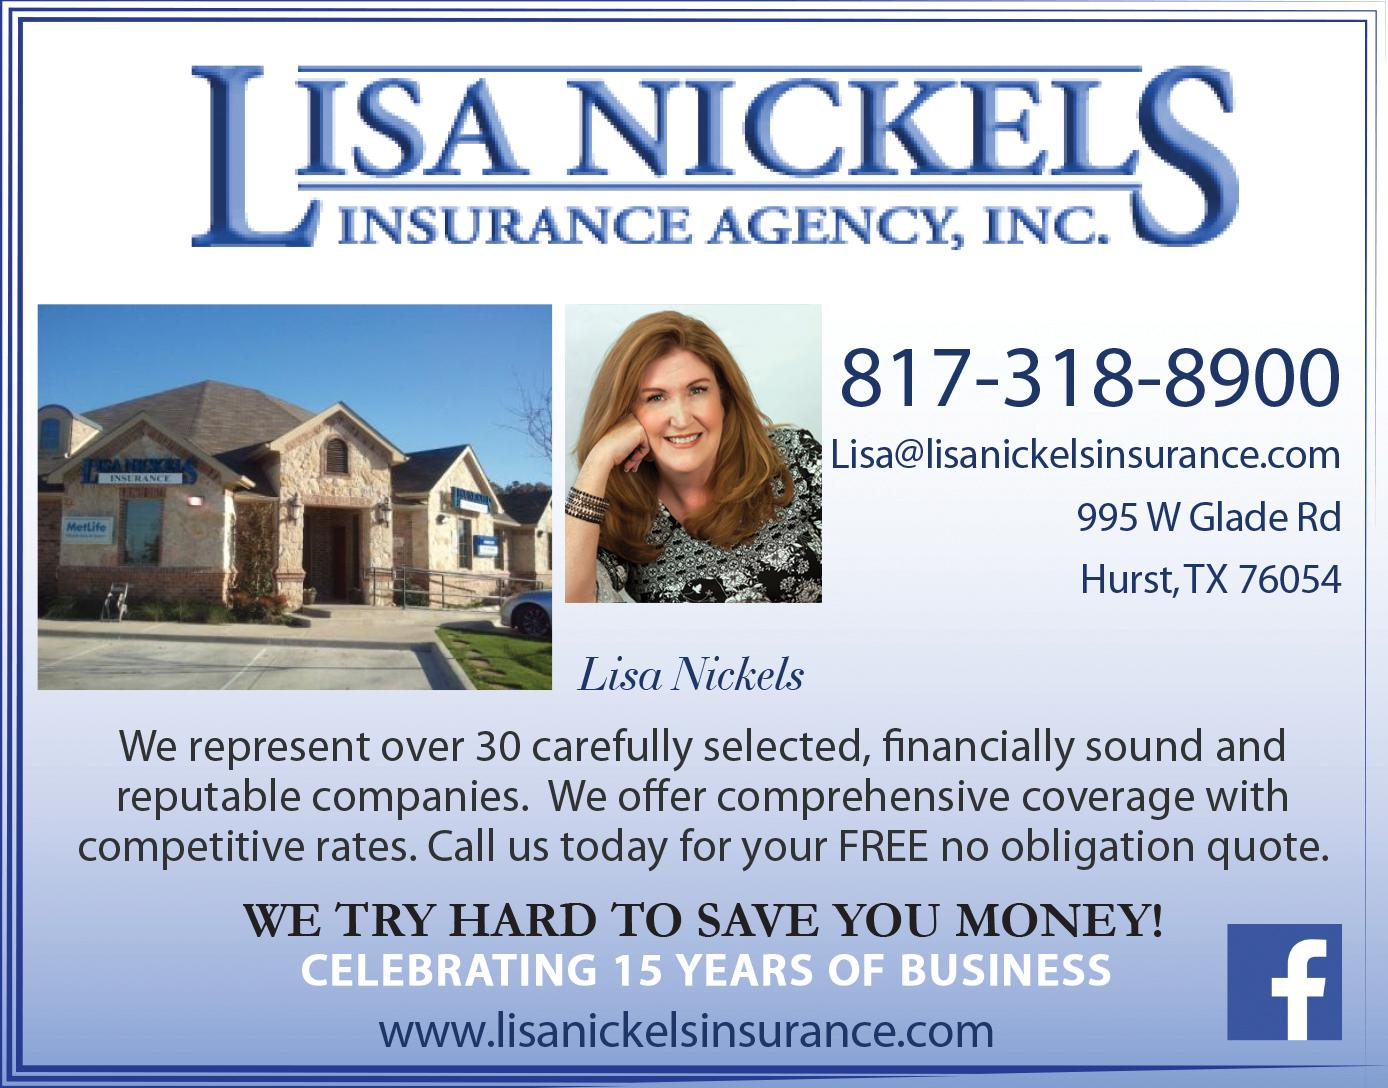 Lisa Nickels Insurance Agency